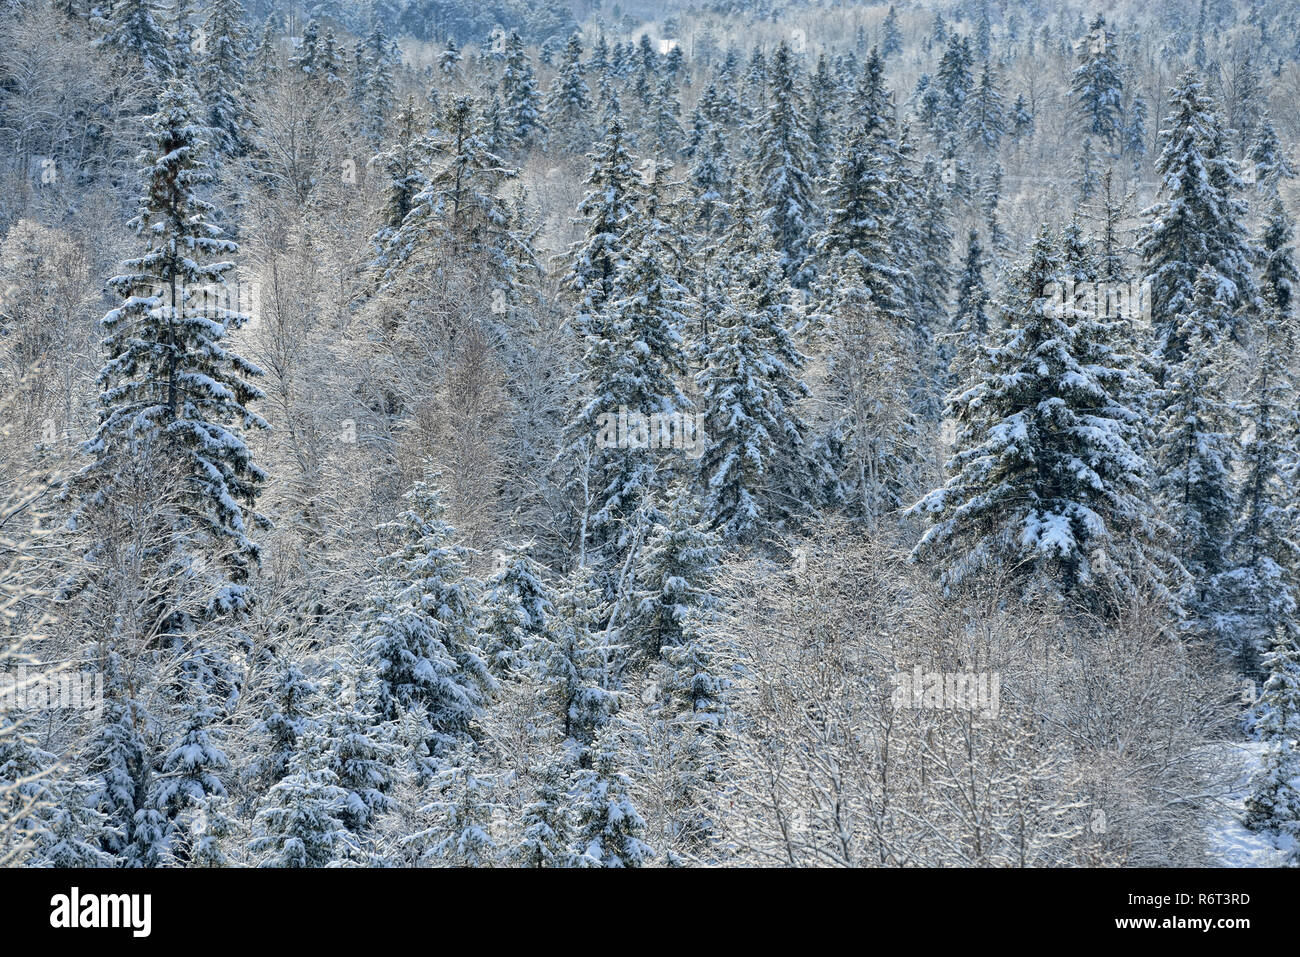 Snow-dusted trees in early winter, Greater Sudbury, Ontario, Canada - Stock Image